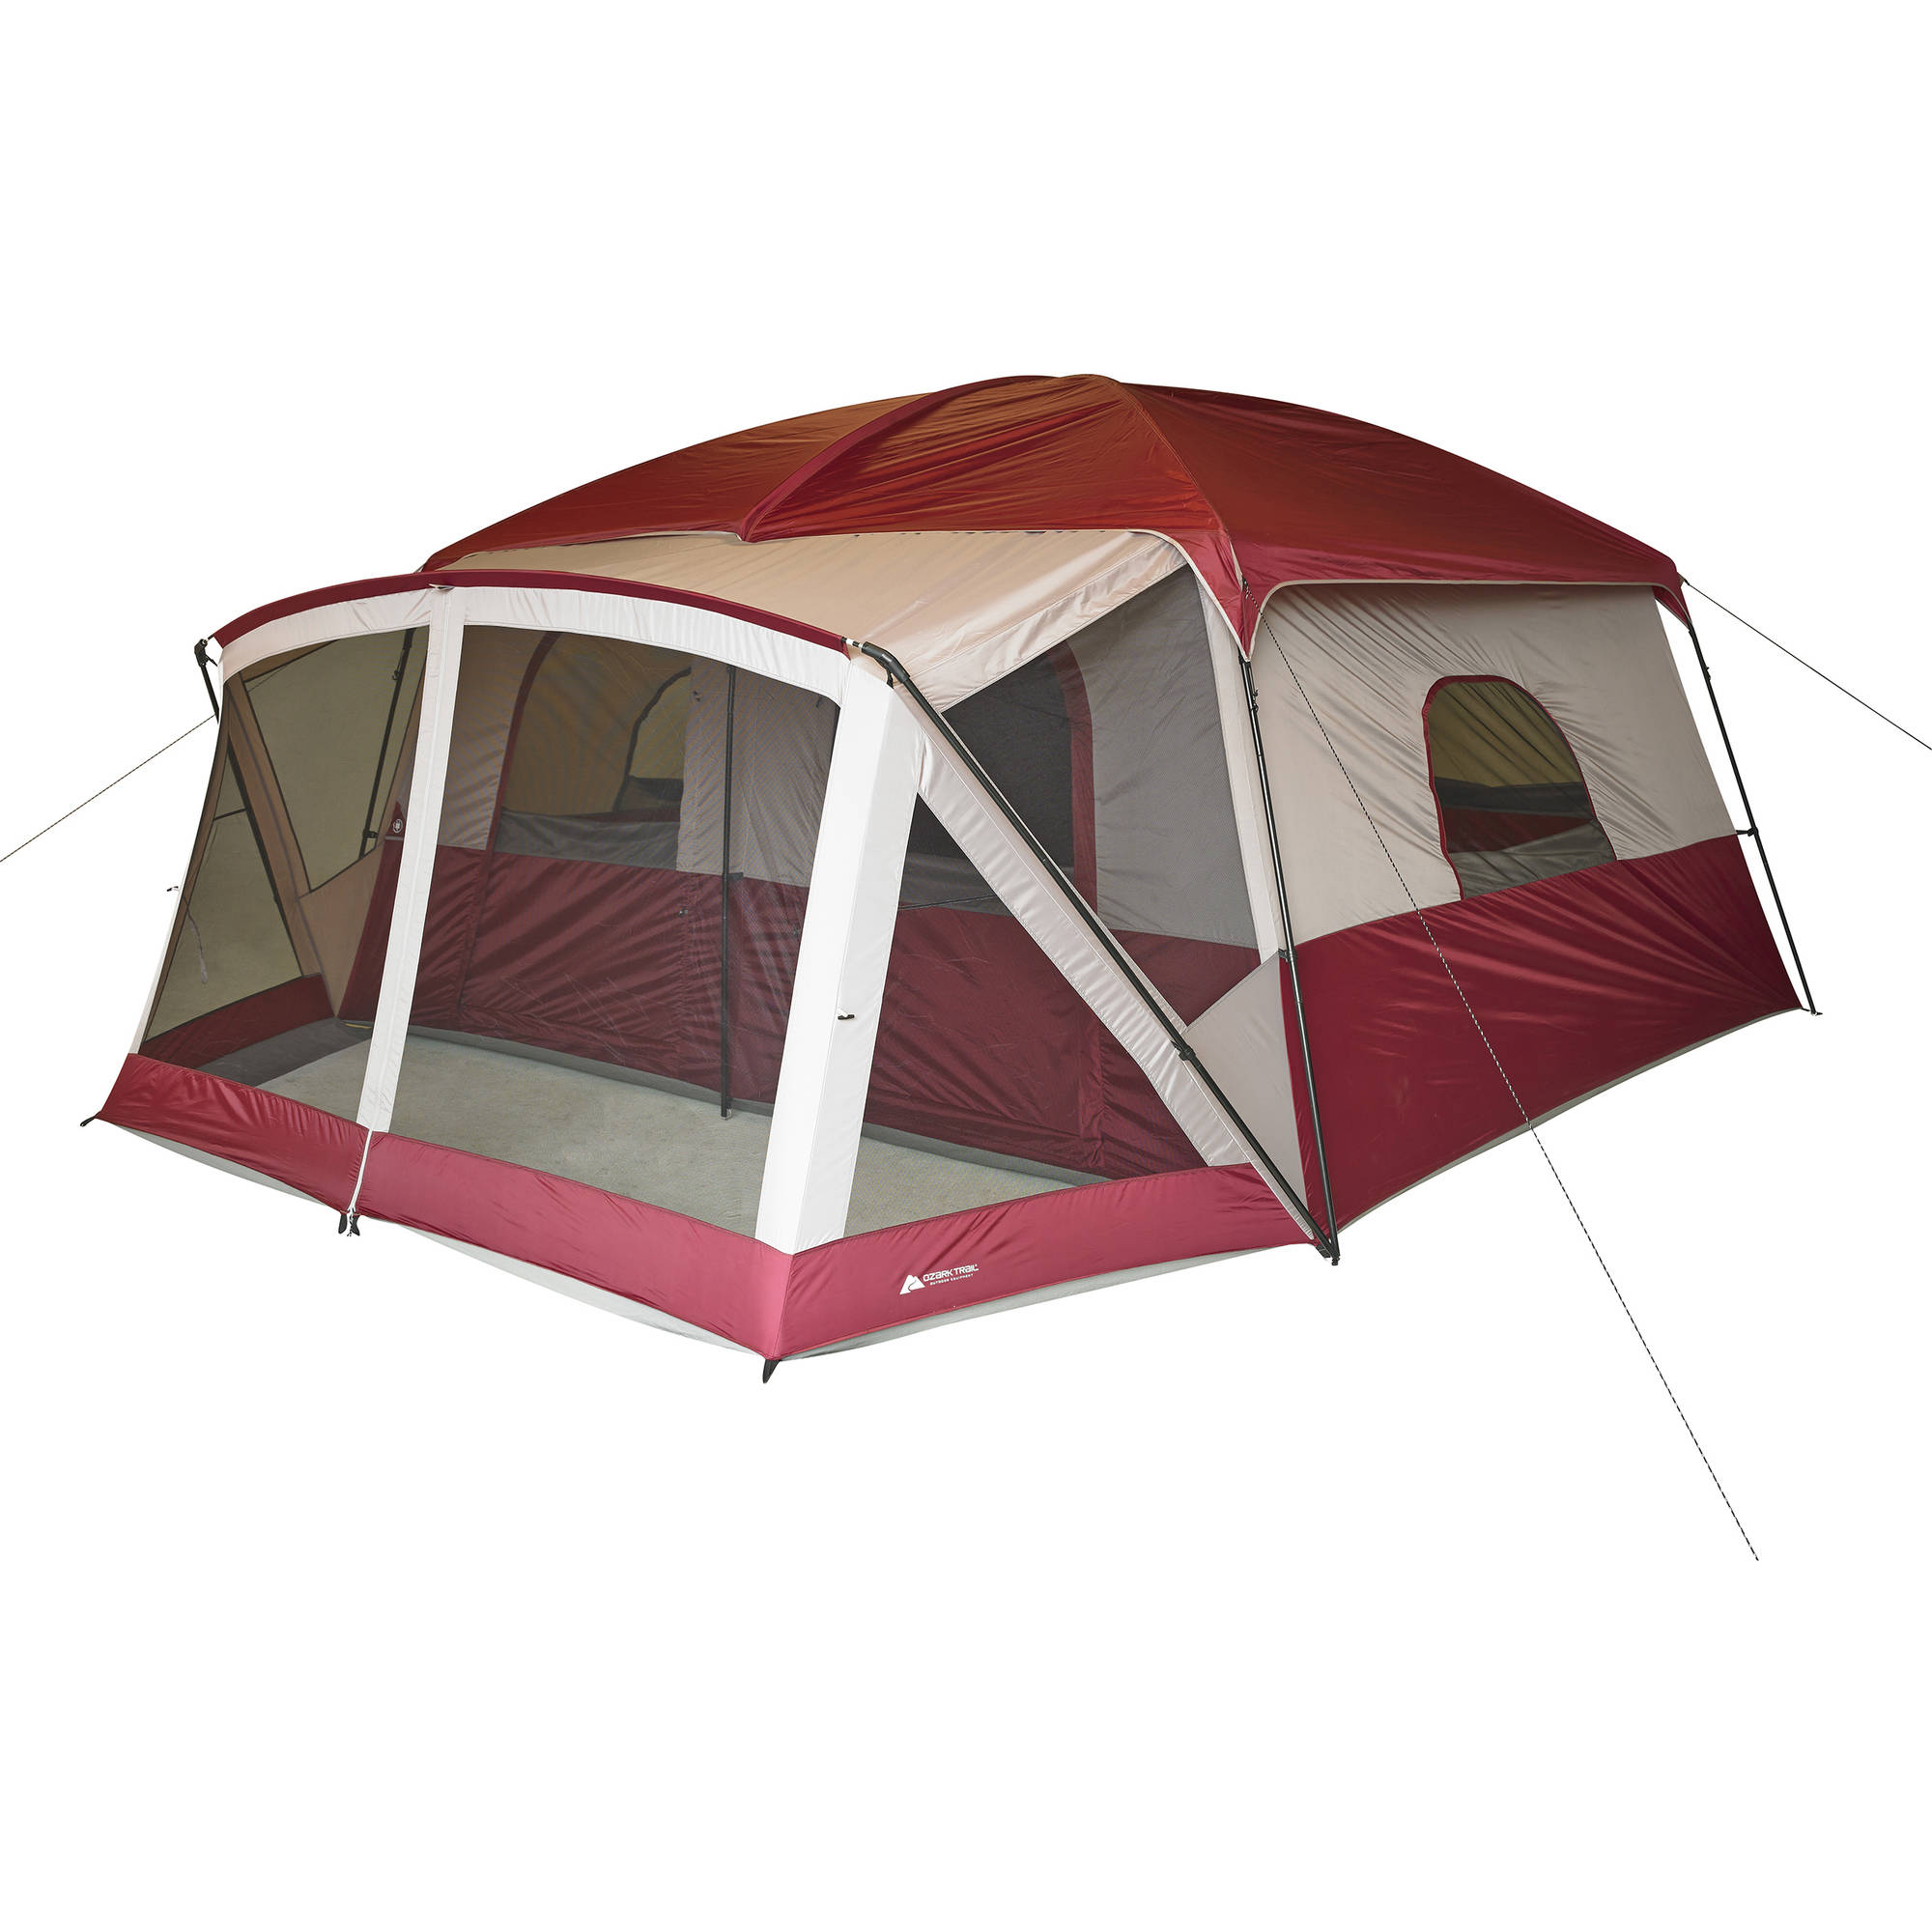 Ozark Trail 12-Person Cabin Tent with Screen Porch  sc 1 st  Walmart : ozark trail cabin tents - memphite.com